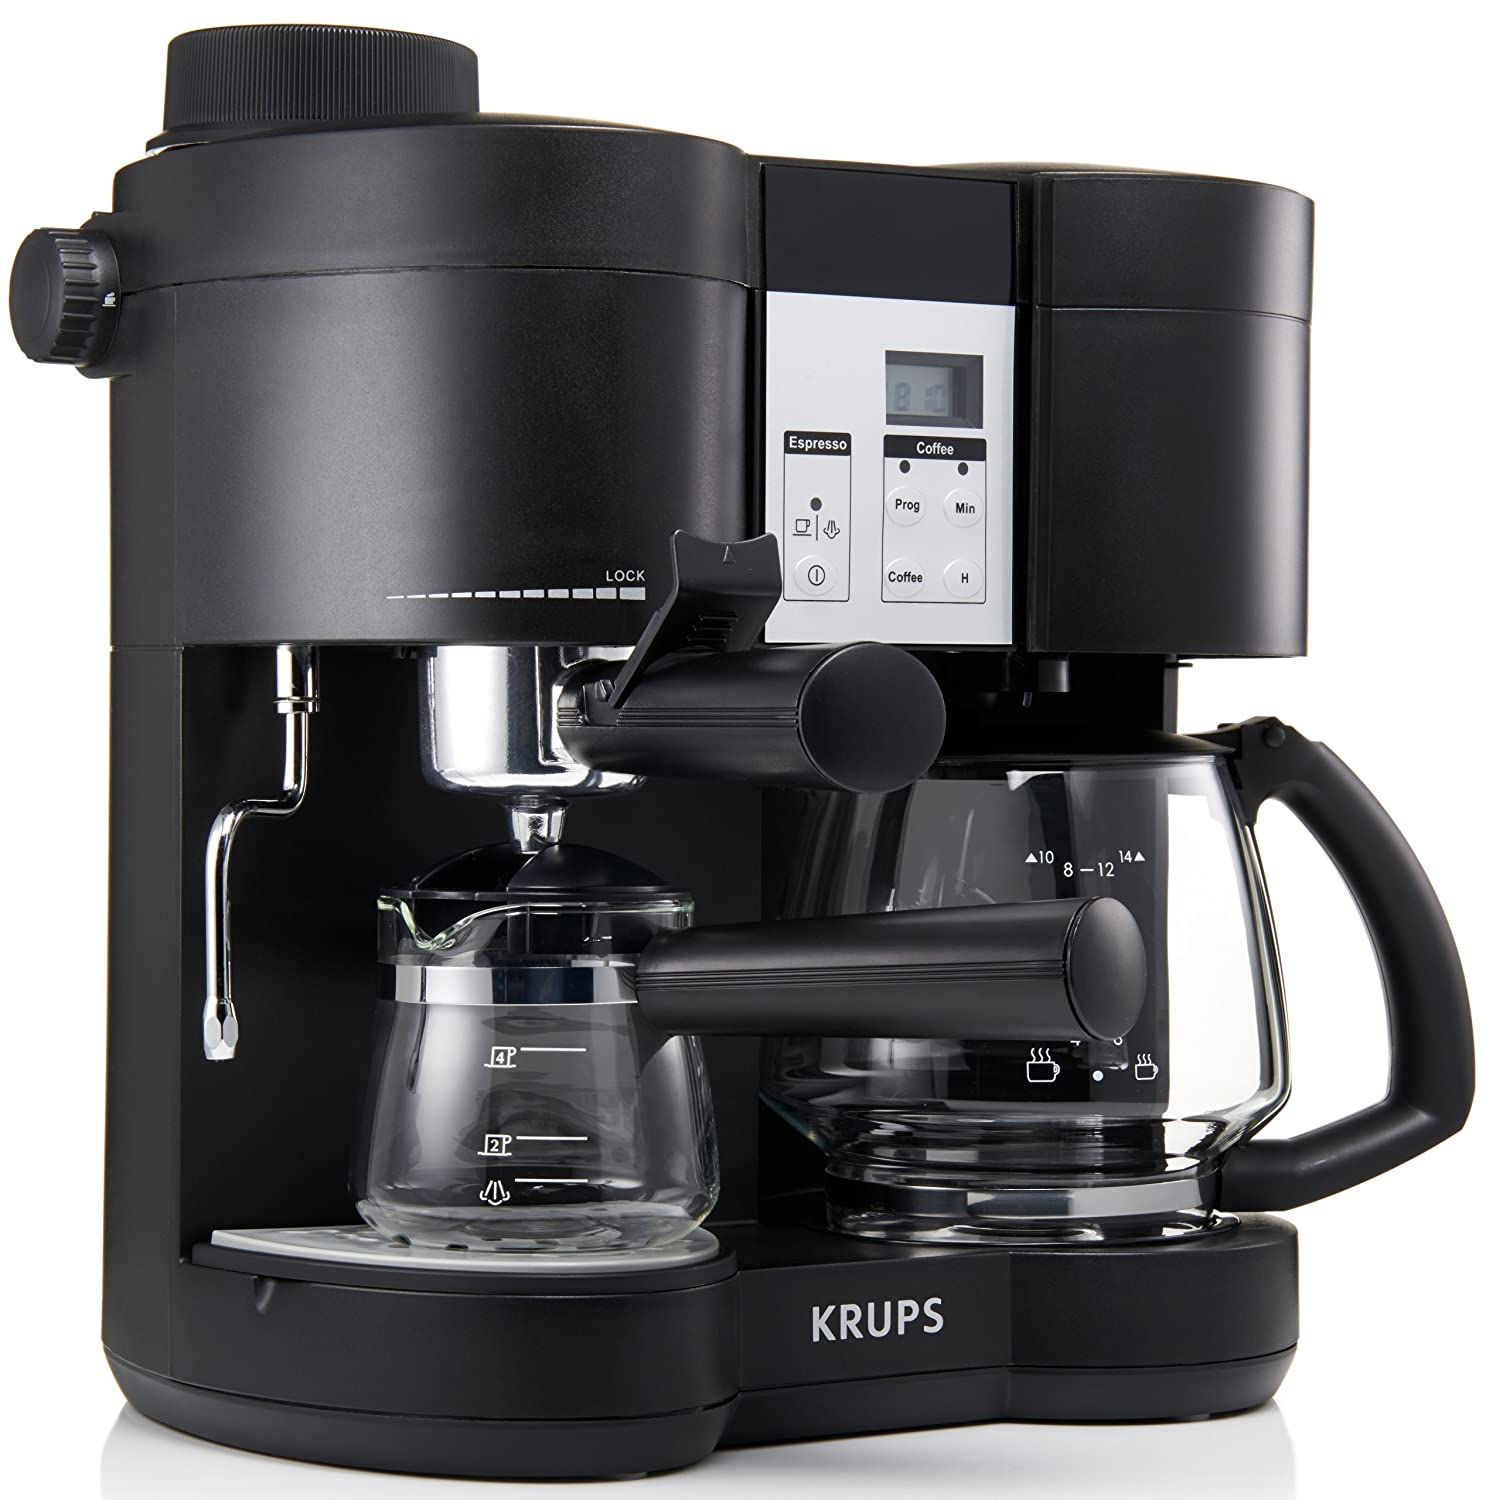 Why the KRUPS XP160050 Steam Espresso and coffee Machine?